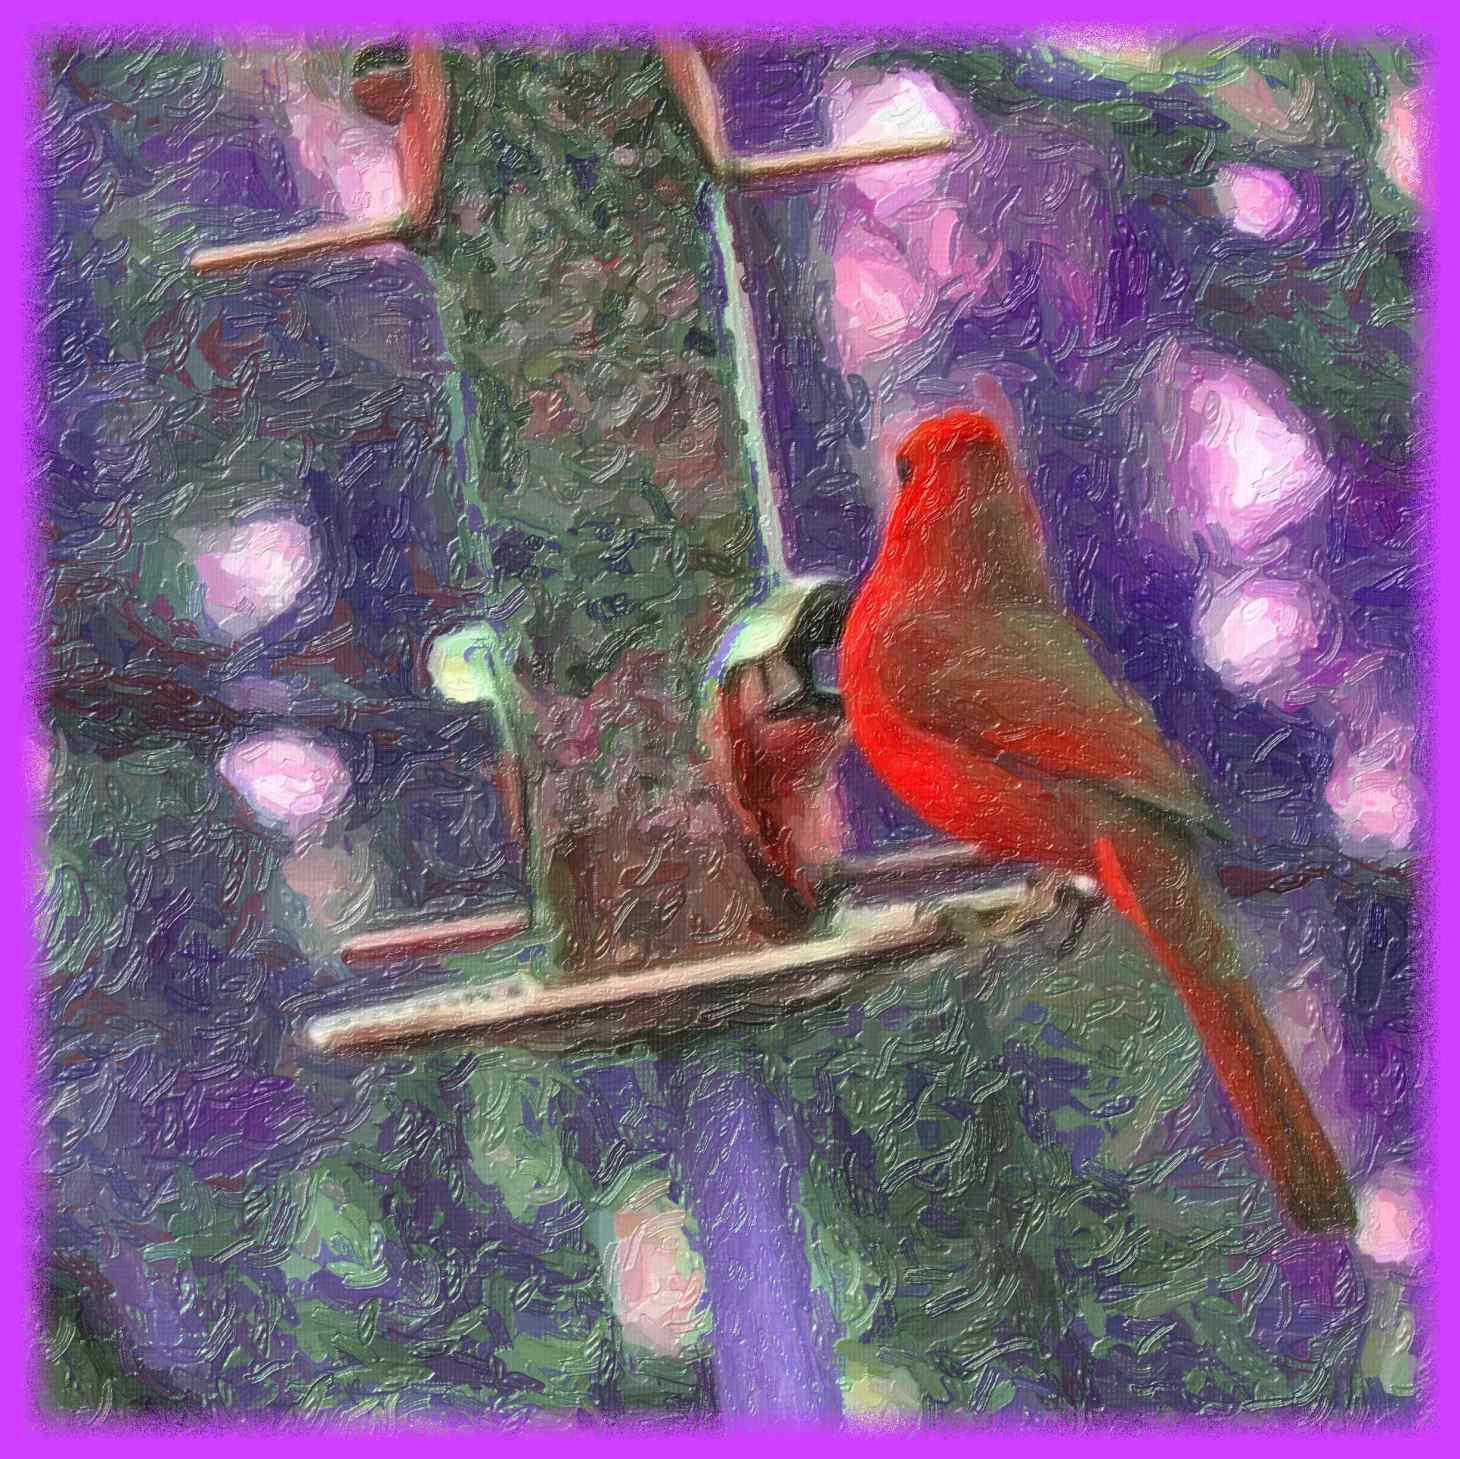 Red Cardinal (2) Ditital Photo Art by Thomas Peace c. 2016